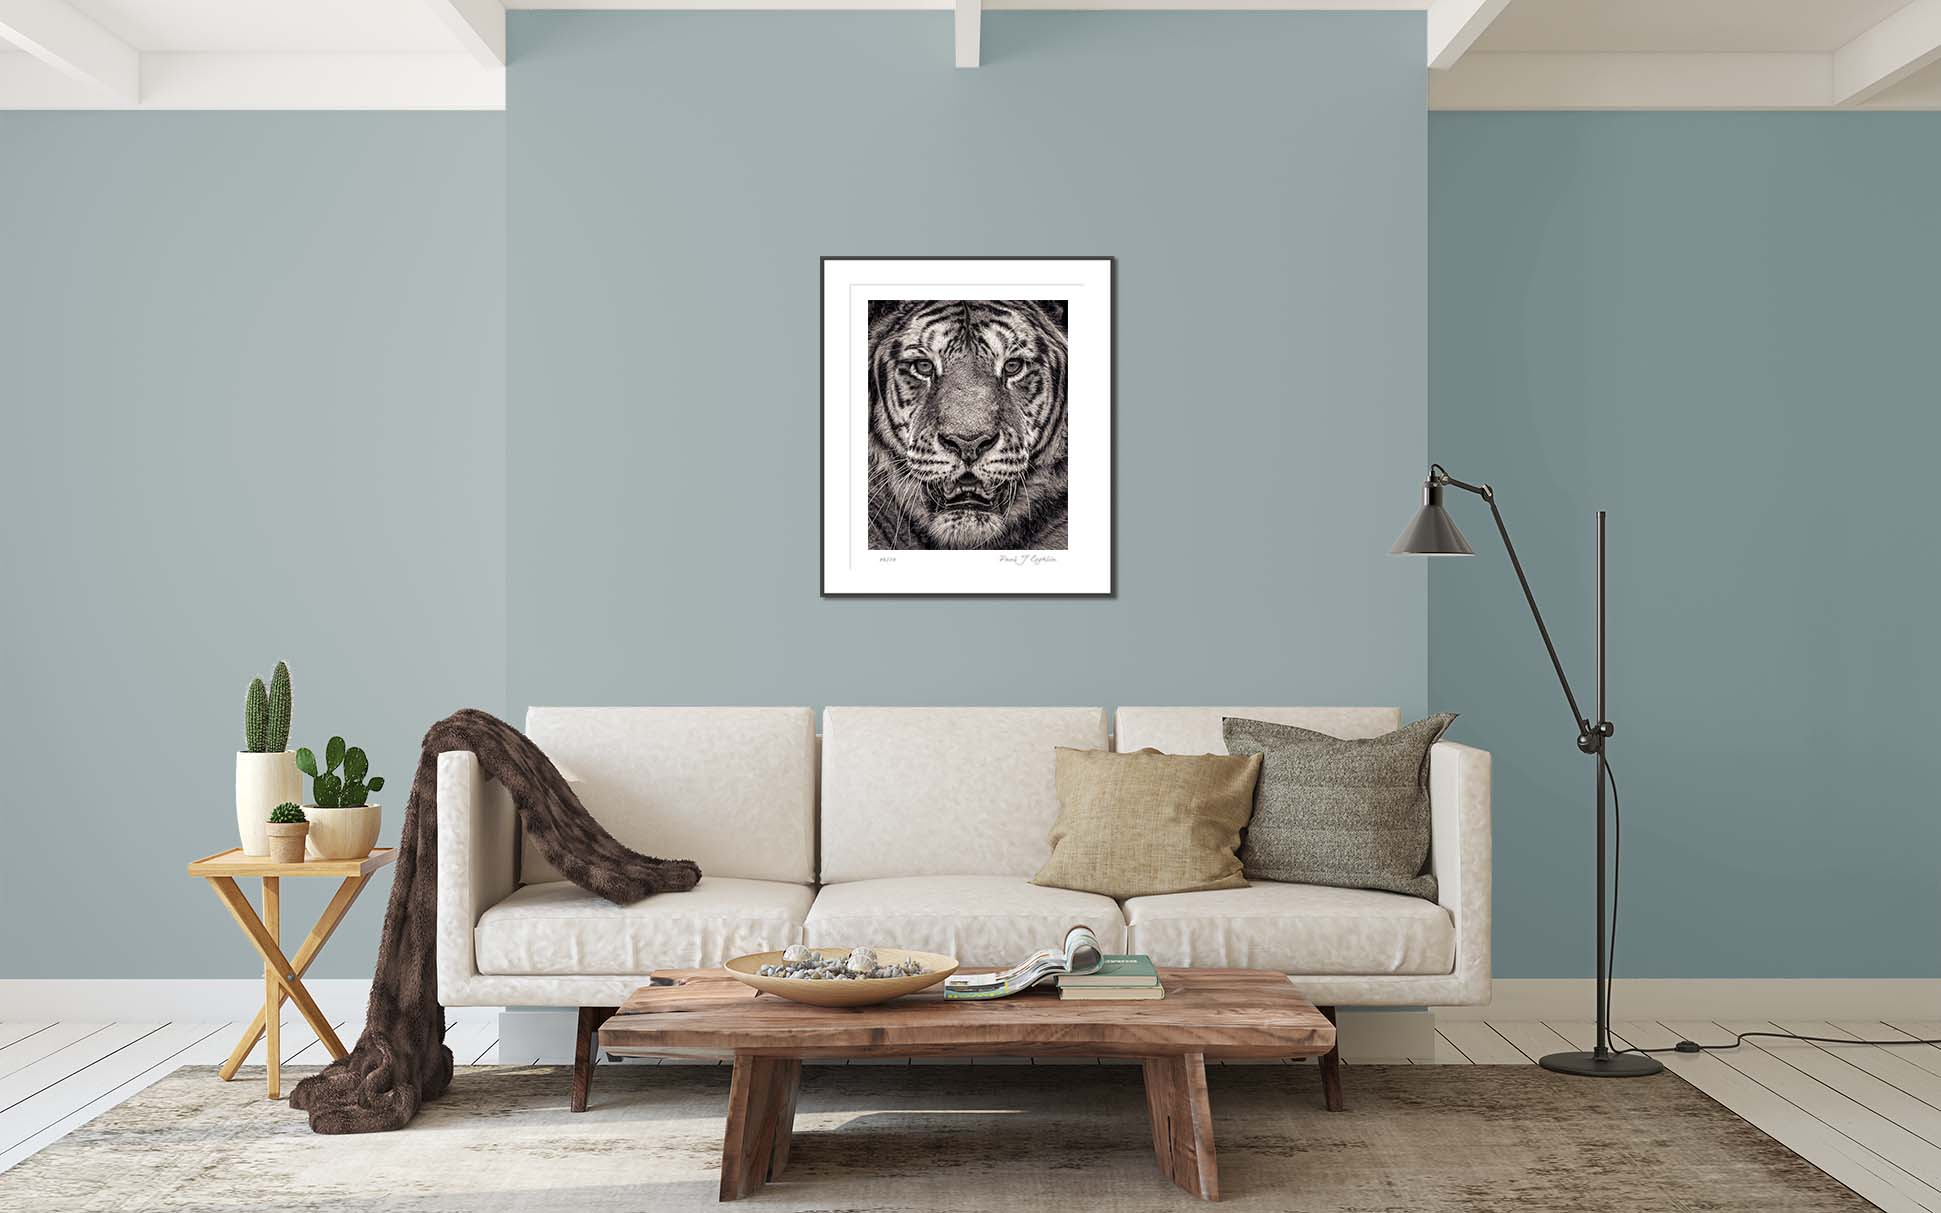 Portrait of a Sumatran Tiger from the Fading From View. Big cat and animal prints by fine art photographer Paul Coghlin. Limited edition photographic prints.